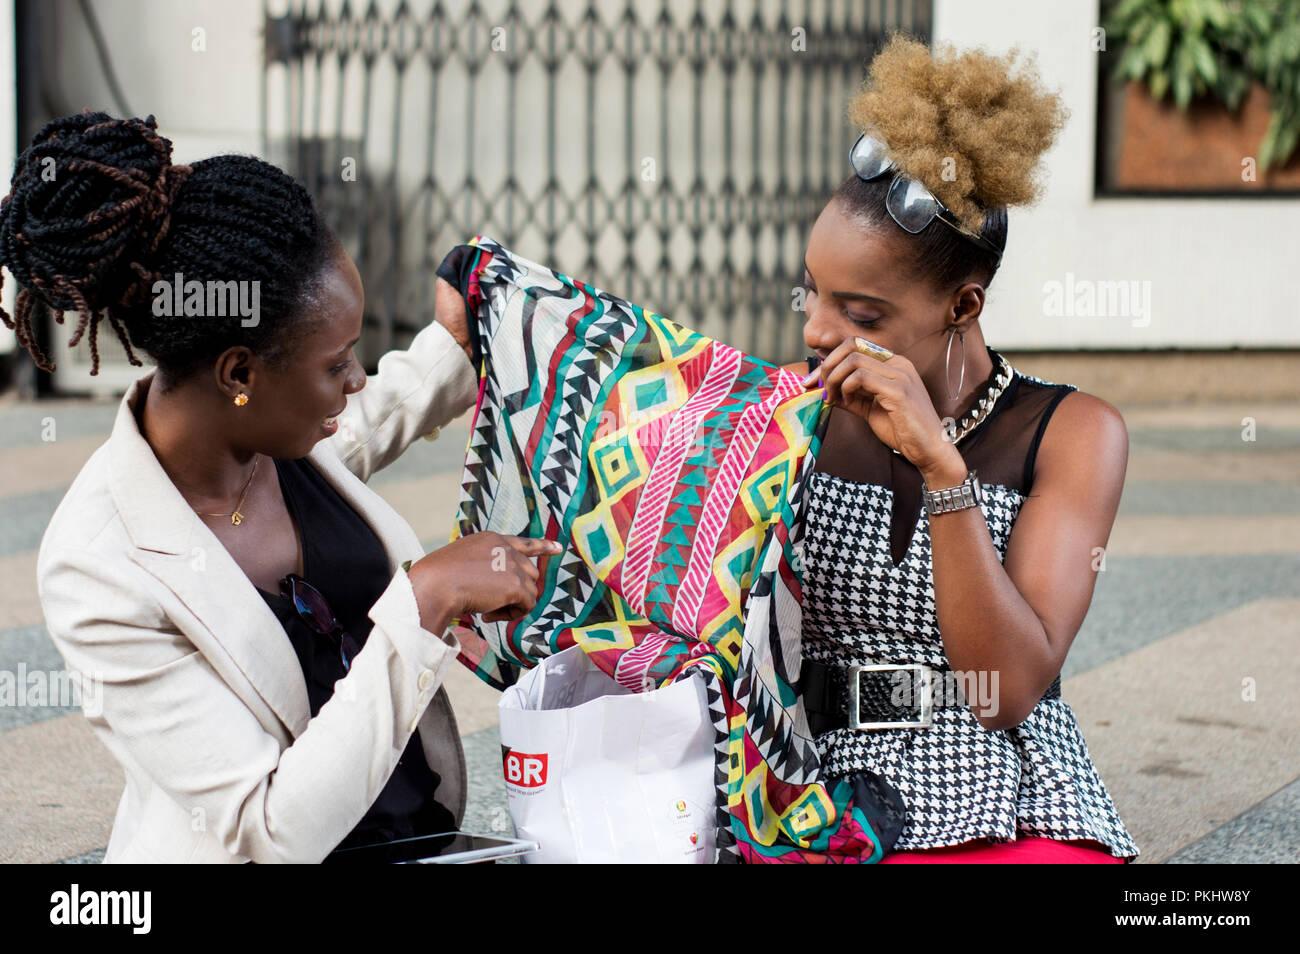 Two smiling businesswomen watching the scarf bought at the shop. - Stock Image